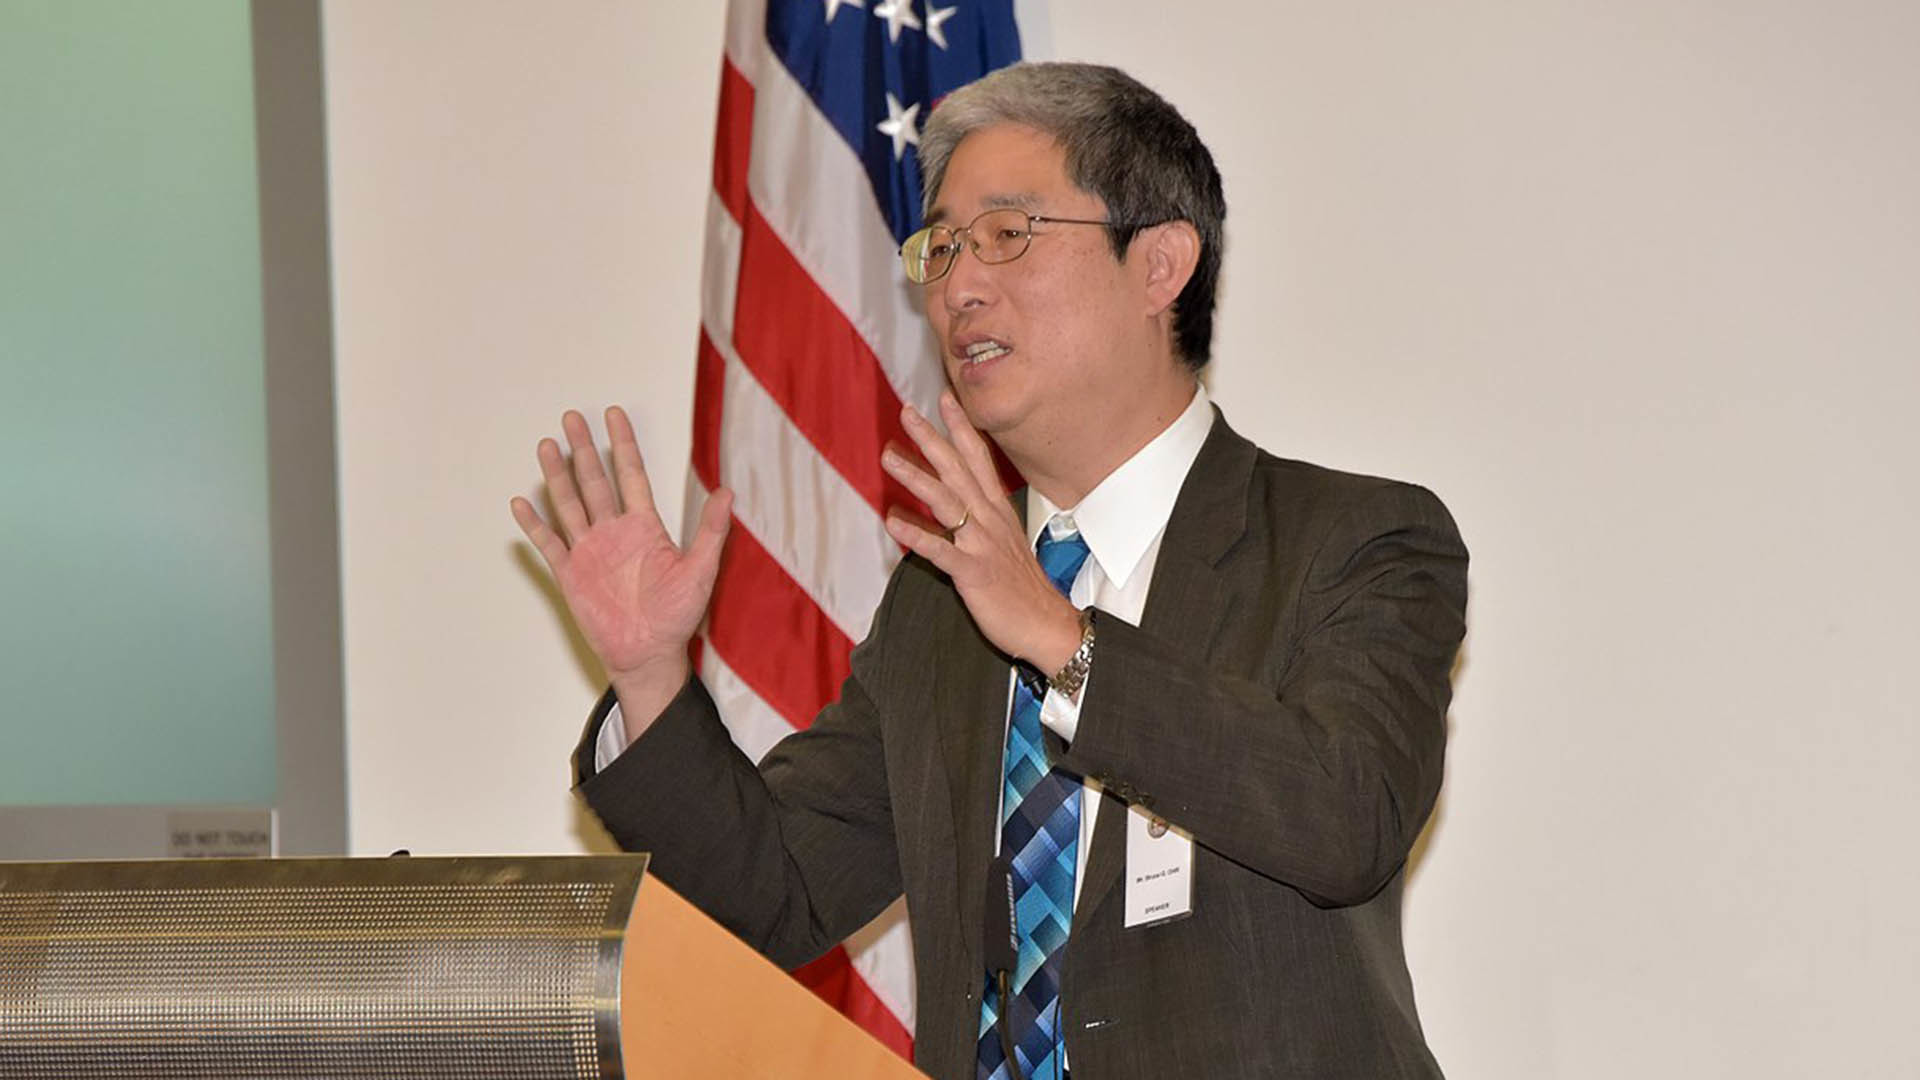 Bruce Ohr the Department of Justice official who brought opposition research on Trump to the FBI did not disclose that Fusion GPS was paying his wife